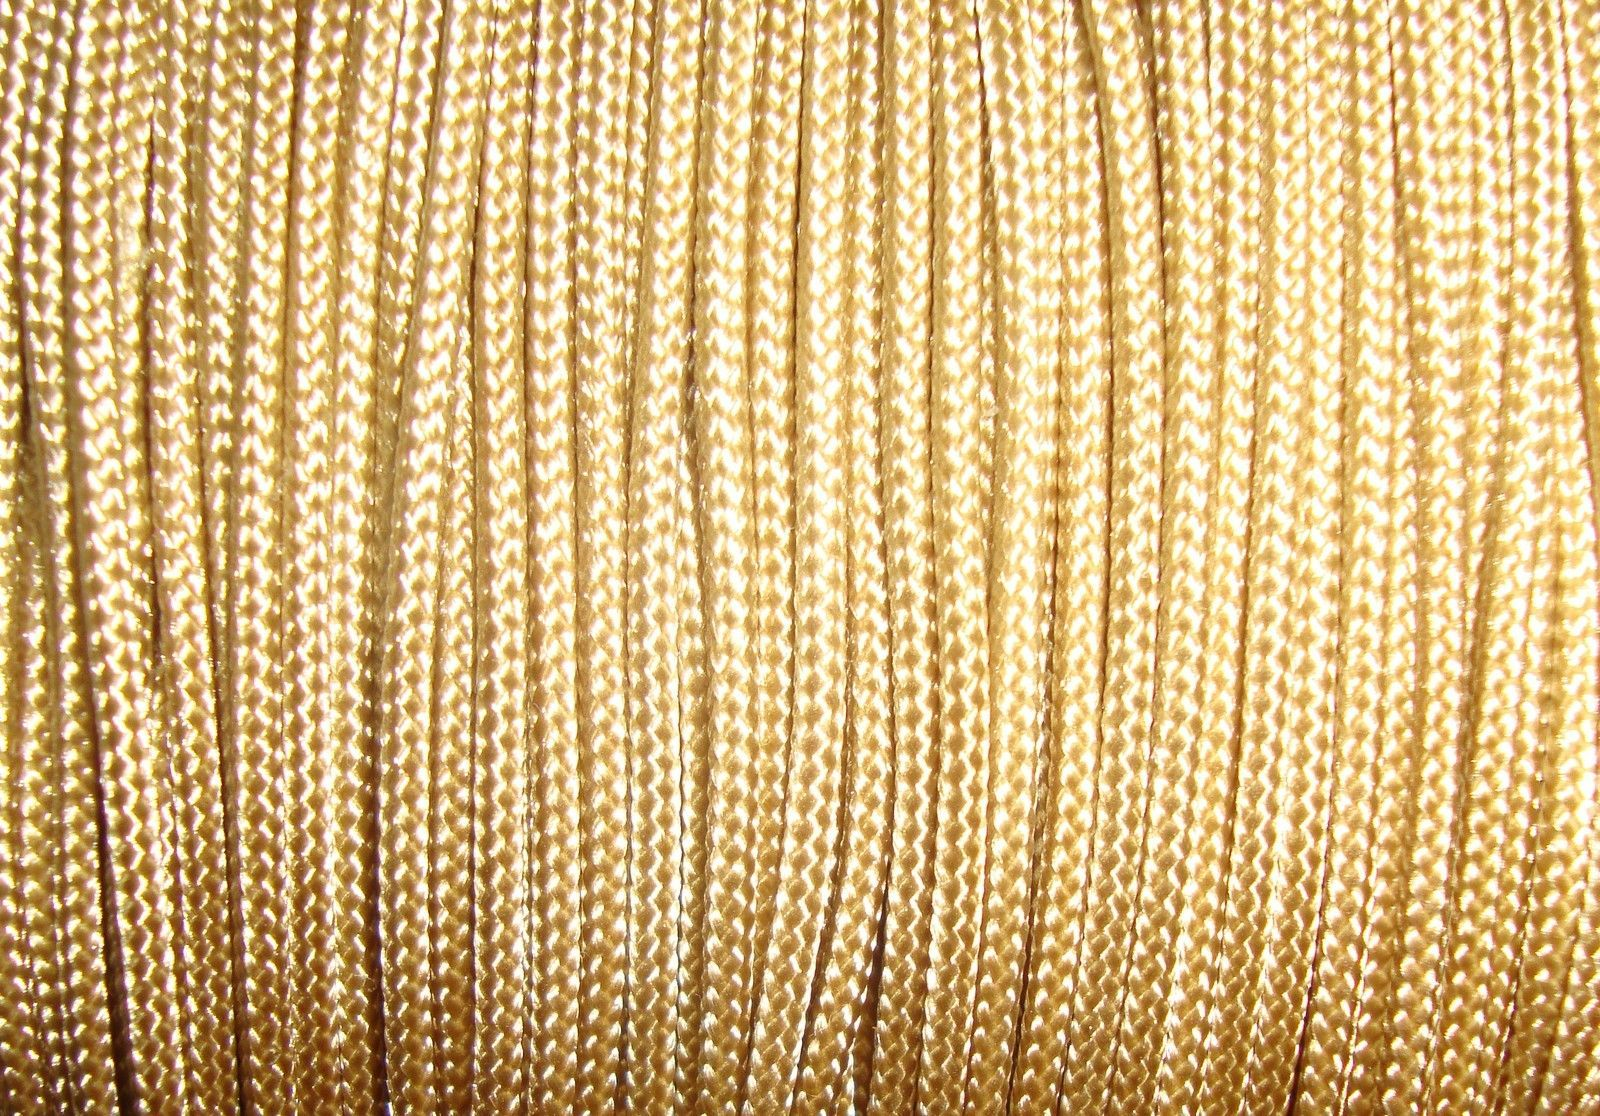 10 YARDS: 1.8mm CAMEL LIFT CORD for Blinds, Roman Shades and More